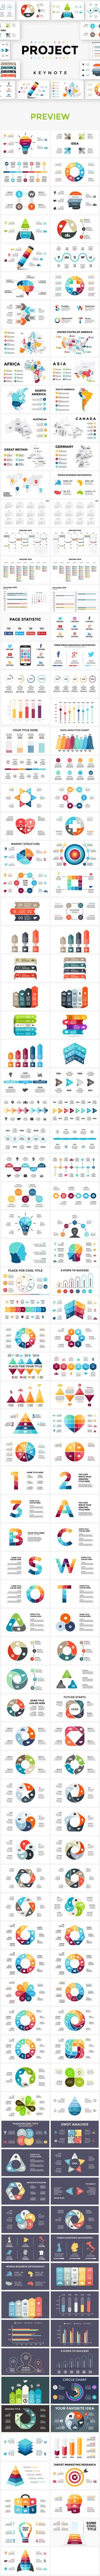 #Project - 171 Unique Infographic Slides - #Keynote Templates Presentation Templates